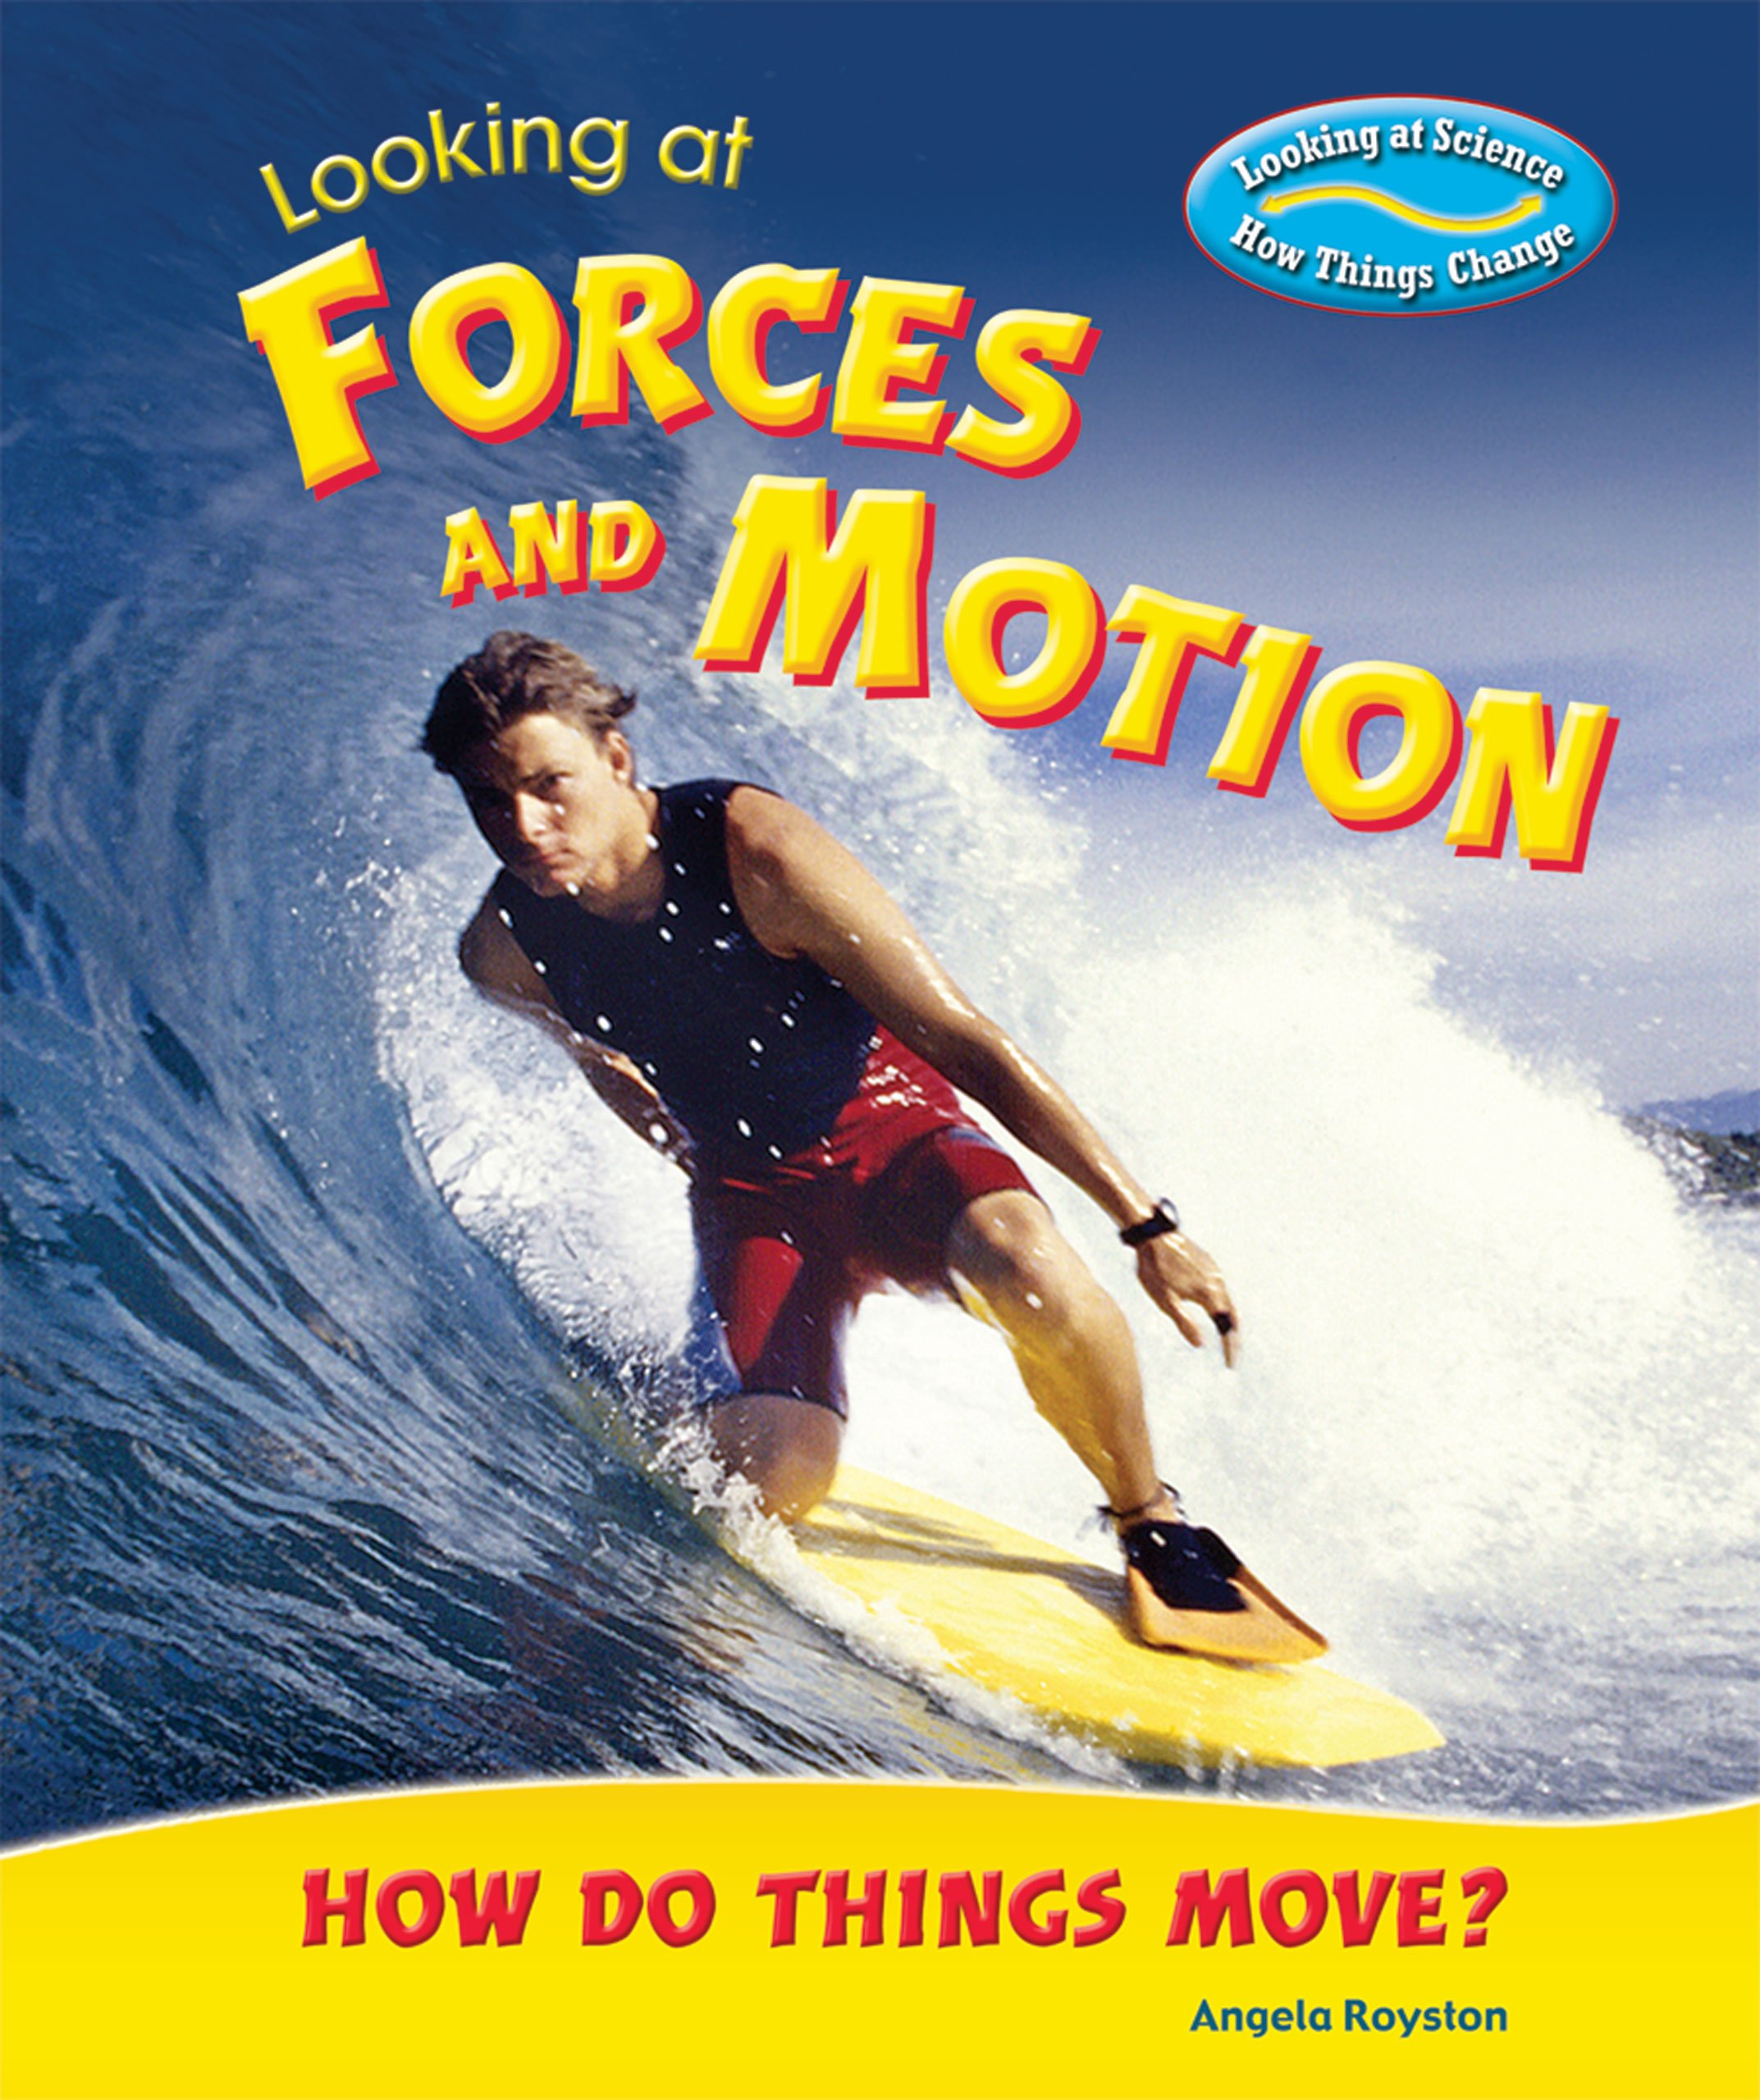 Download Looking at Forces and Motion: How Do Things Move? (Looking at Science: How Things Change) ebook